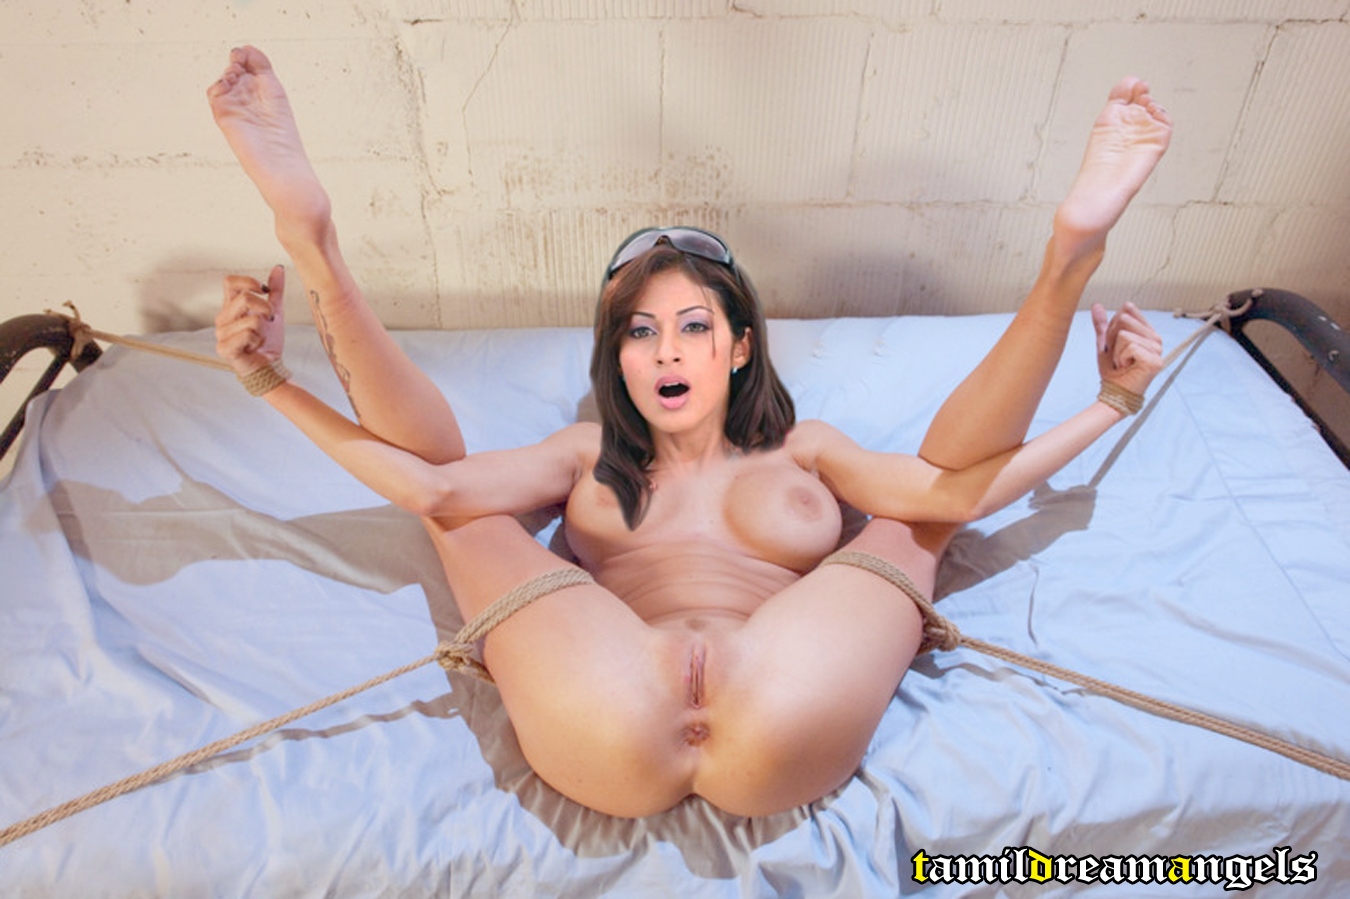 Nude girl bondage fantasy fucking video